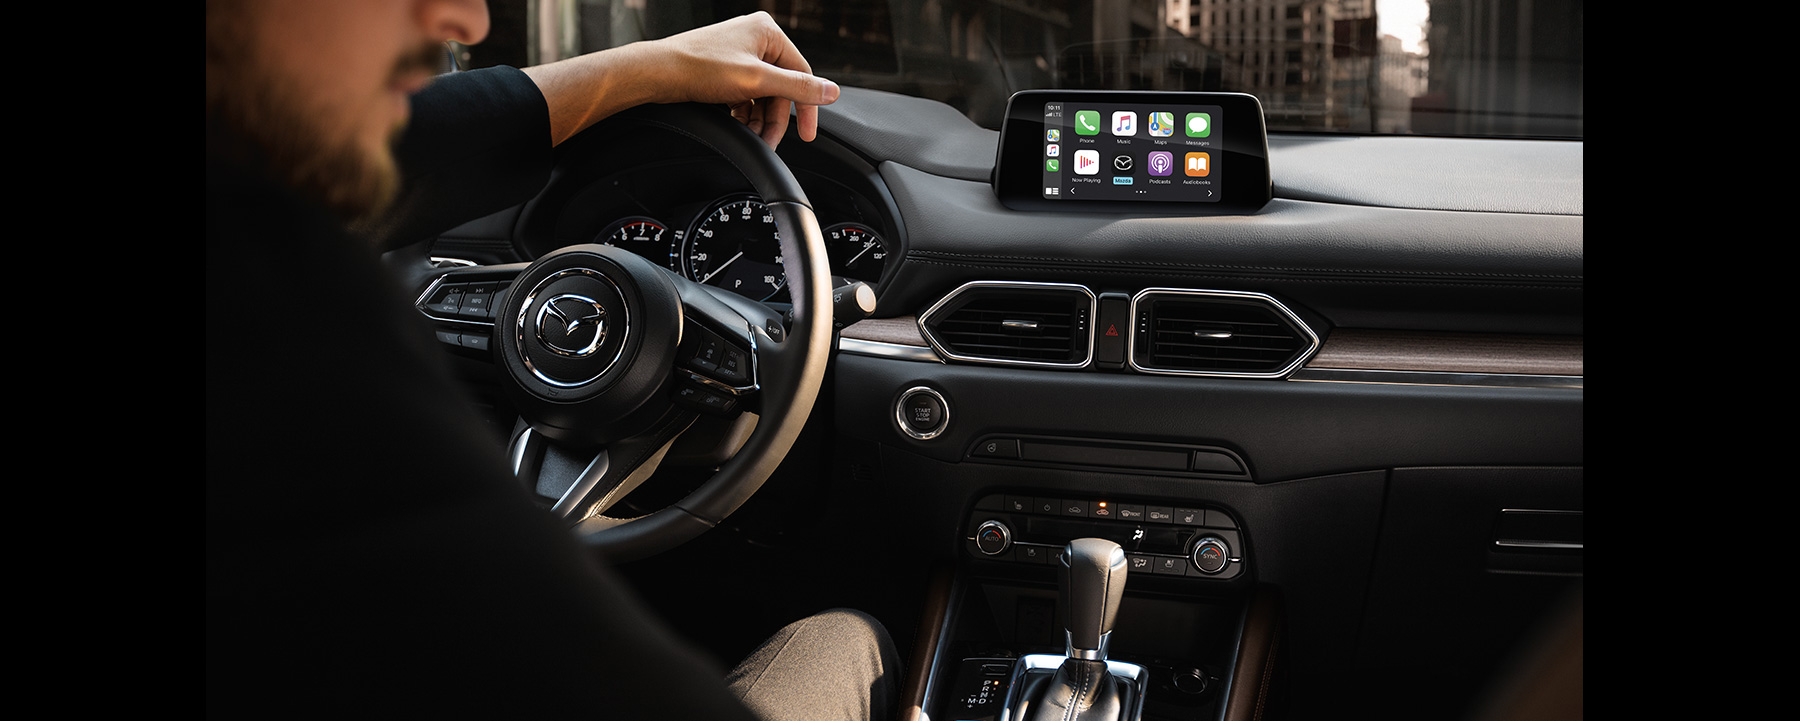 Man driving a Mazda CX-5 with Apple Carplay in view